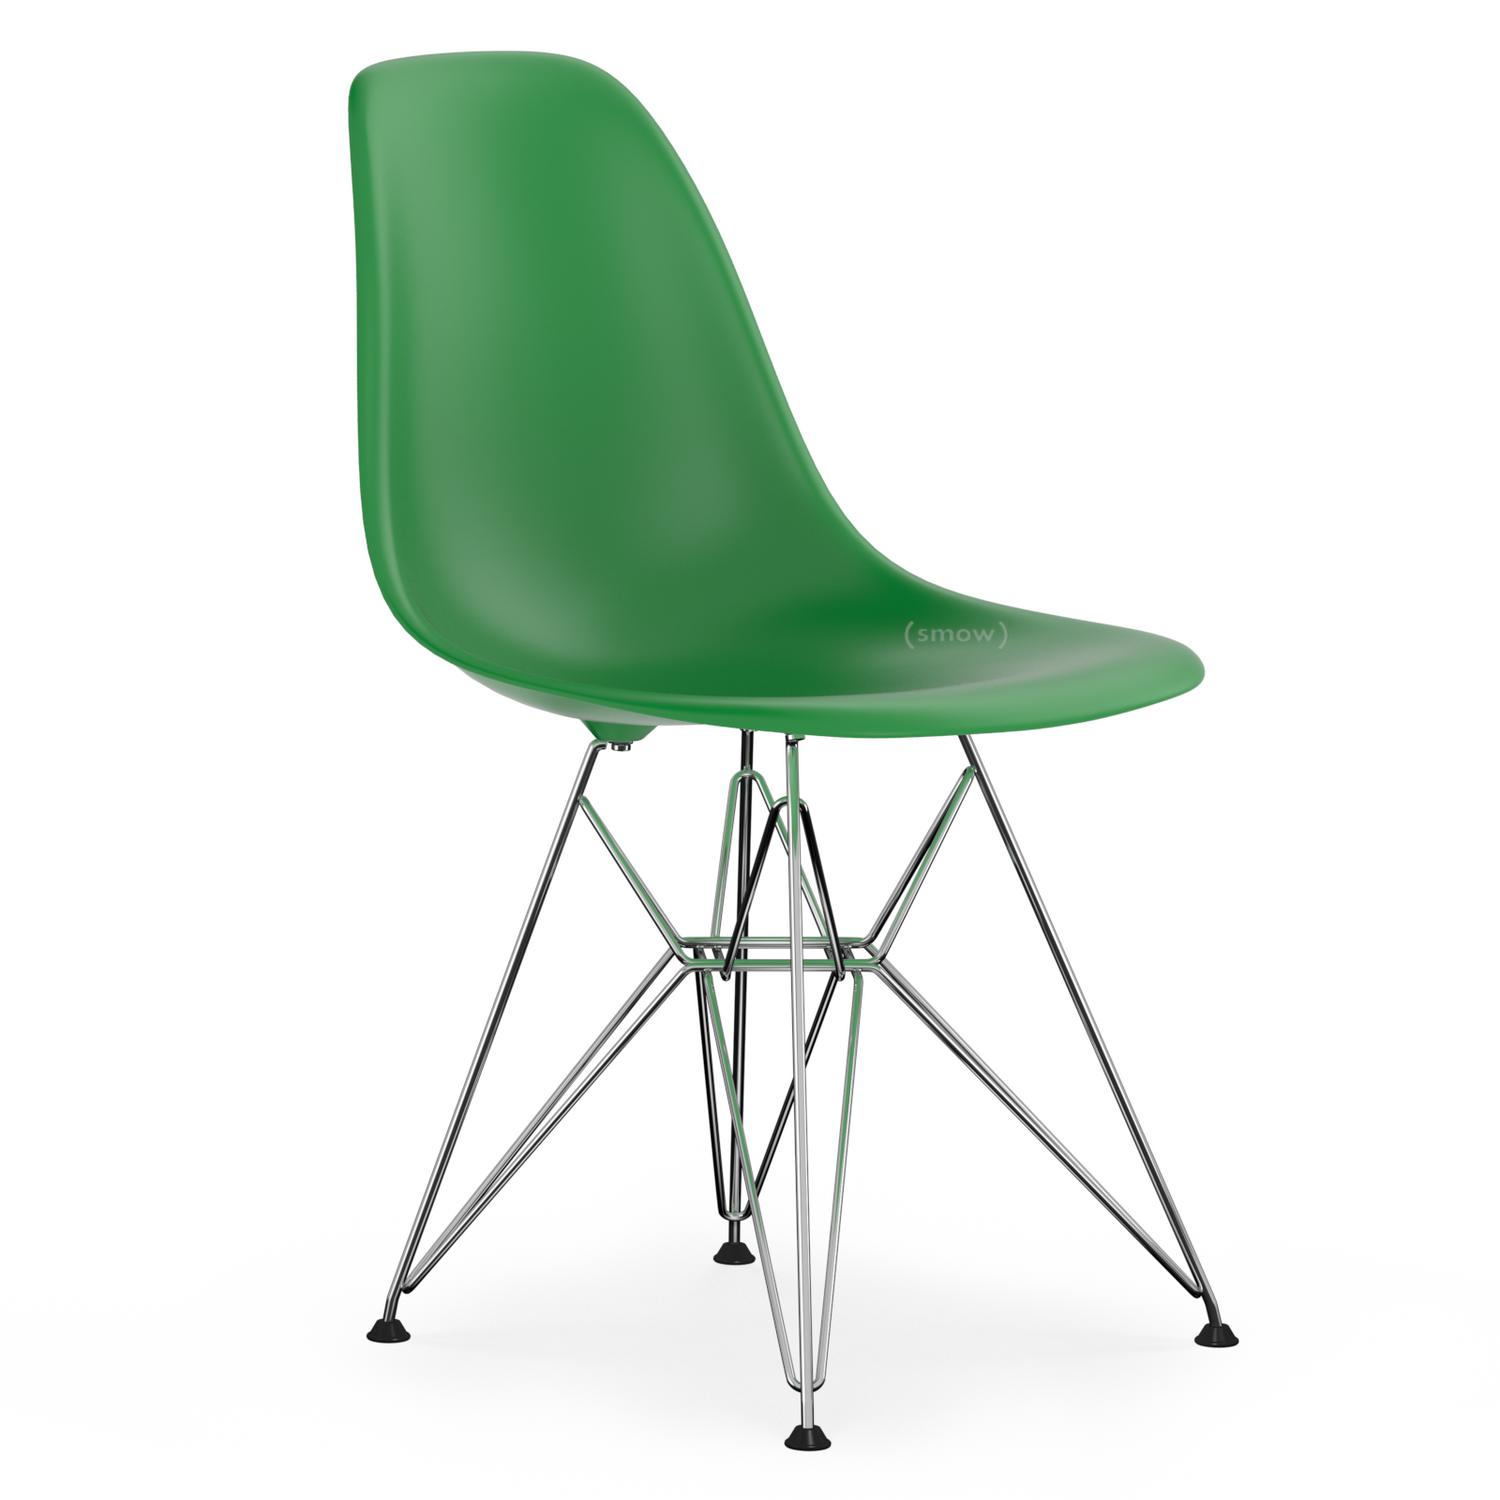 vitra eames plastic side chair dsr classic green without upholstery without upholstery. Black Bedroom Furniture Sets. Home Design Ideas